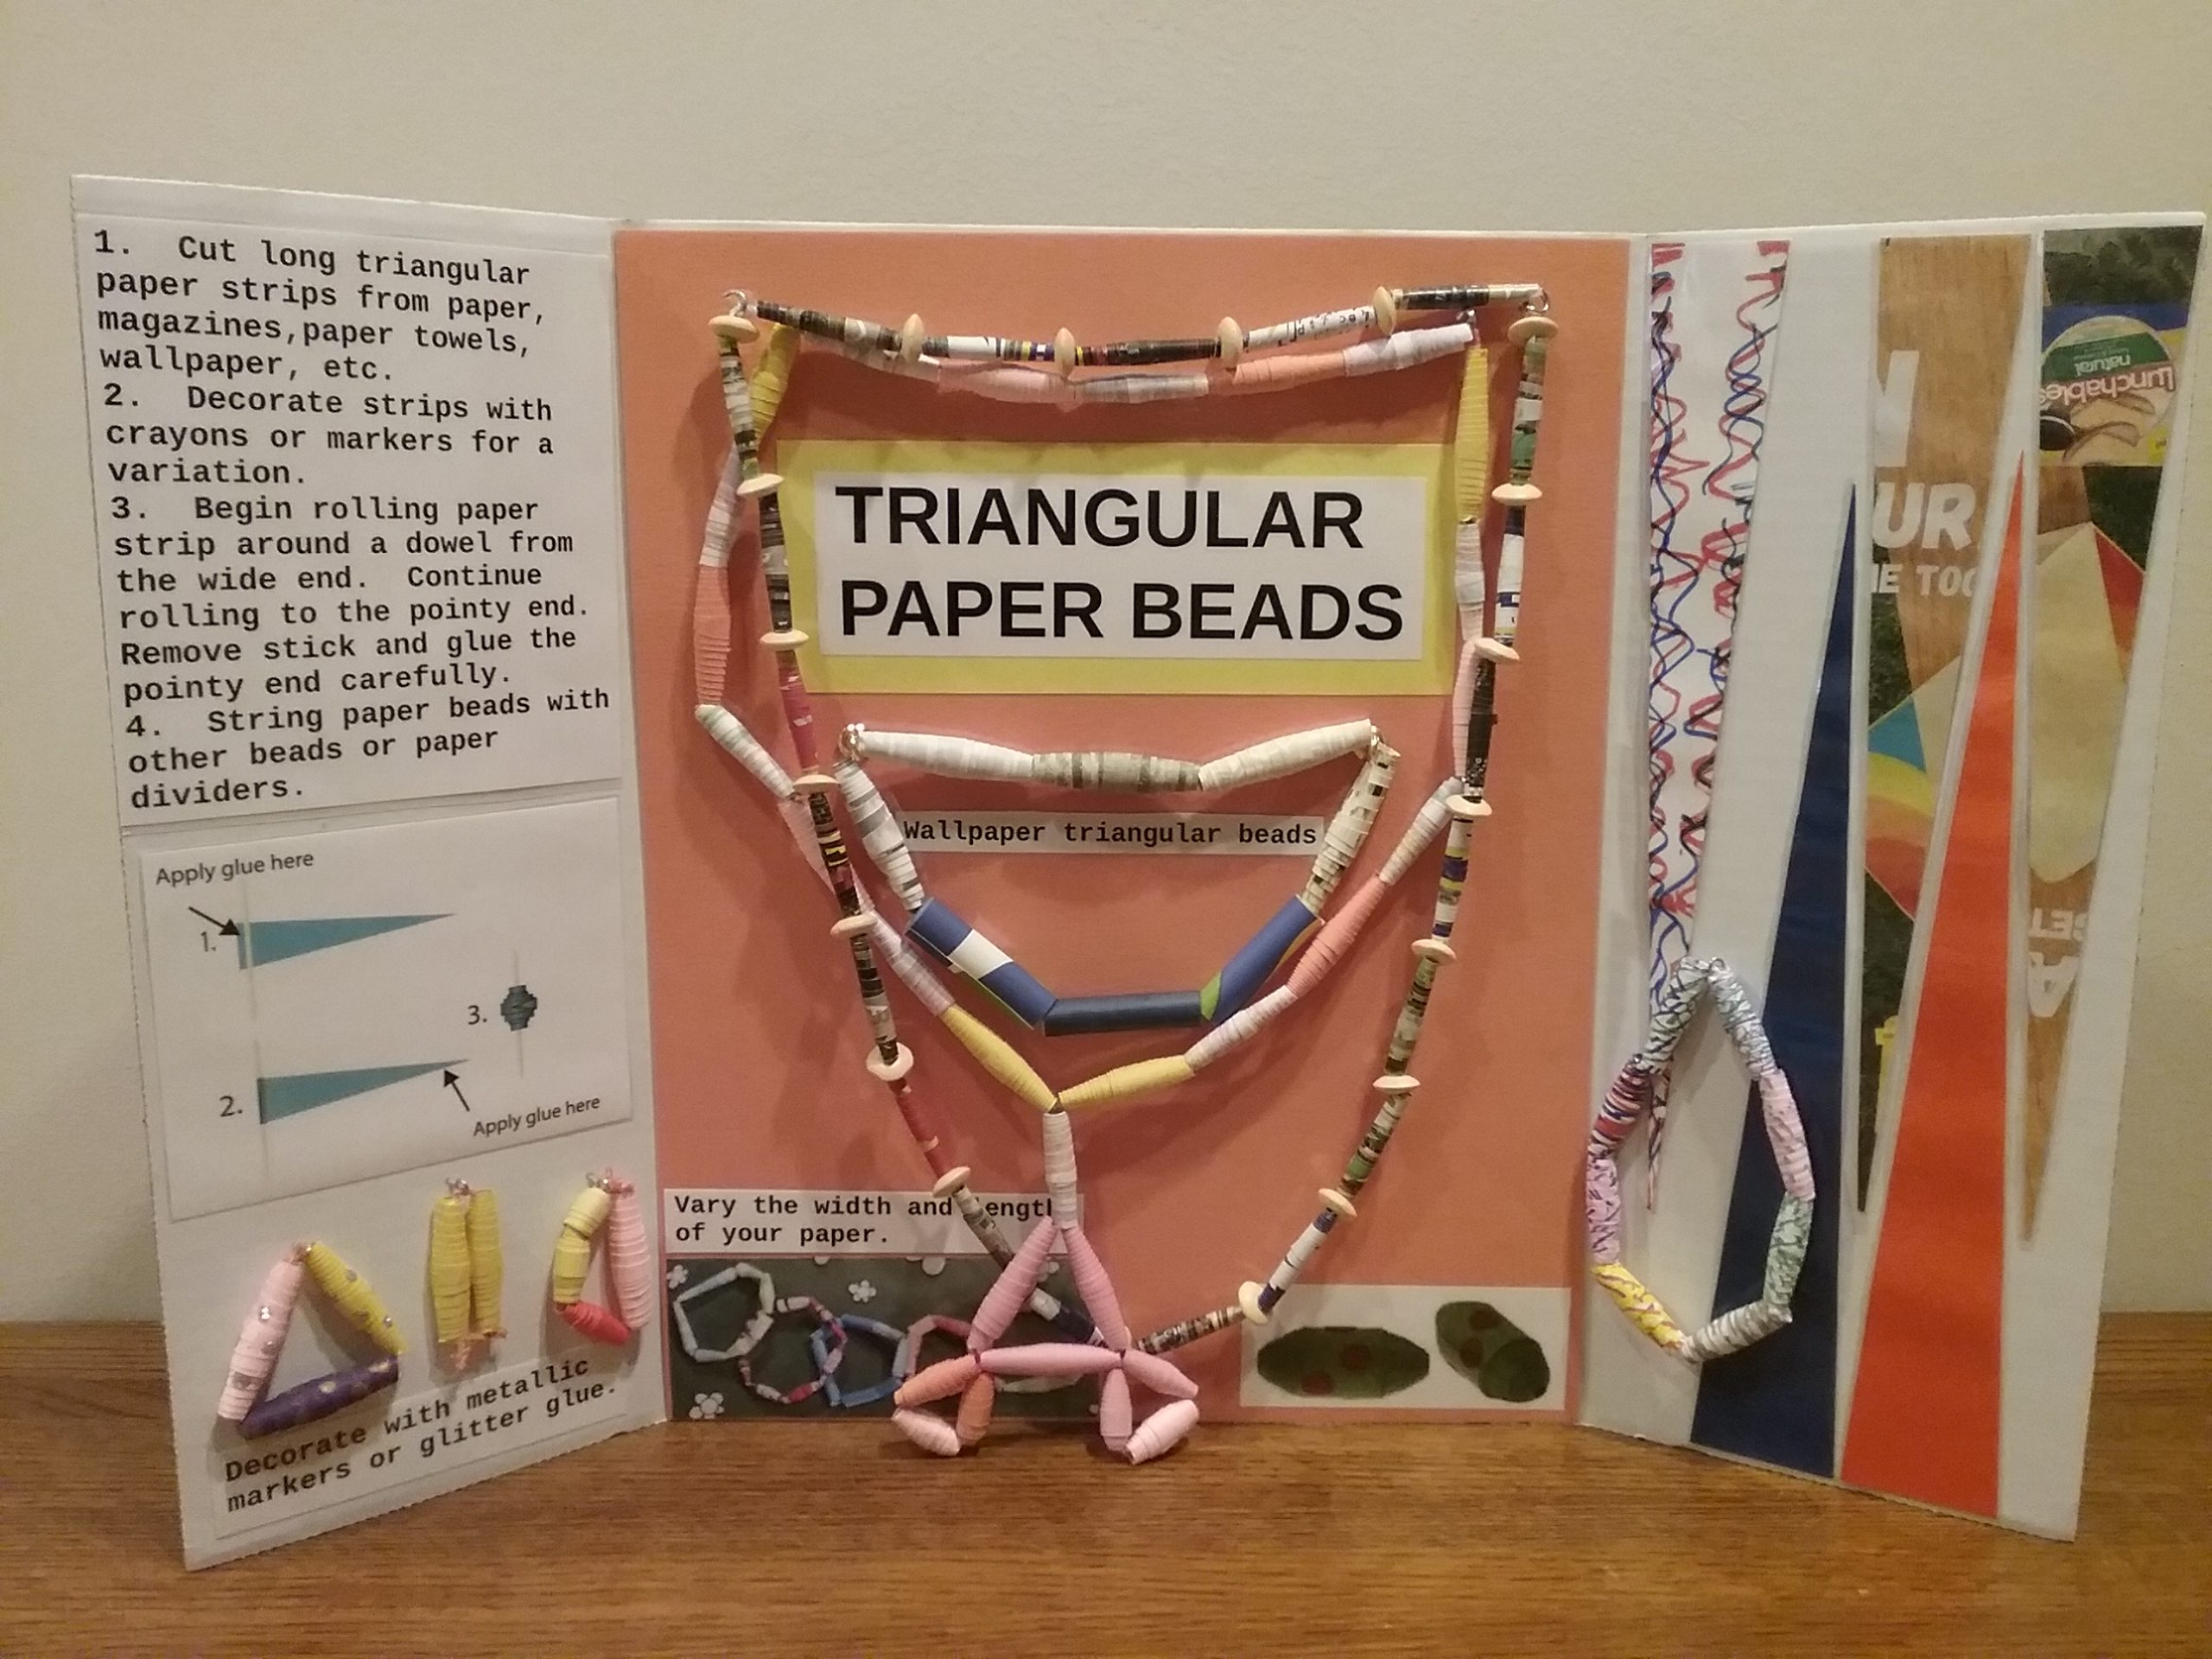 """Bead-making how-to board, """"Triangular Paper Beads,"""" by Kathy Gerdts-Senger, 2020."""